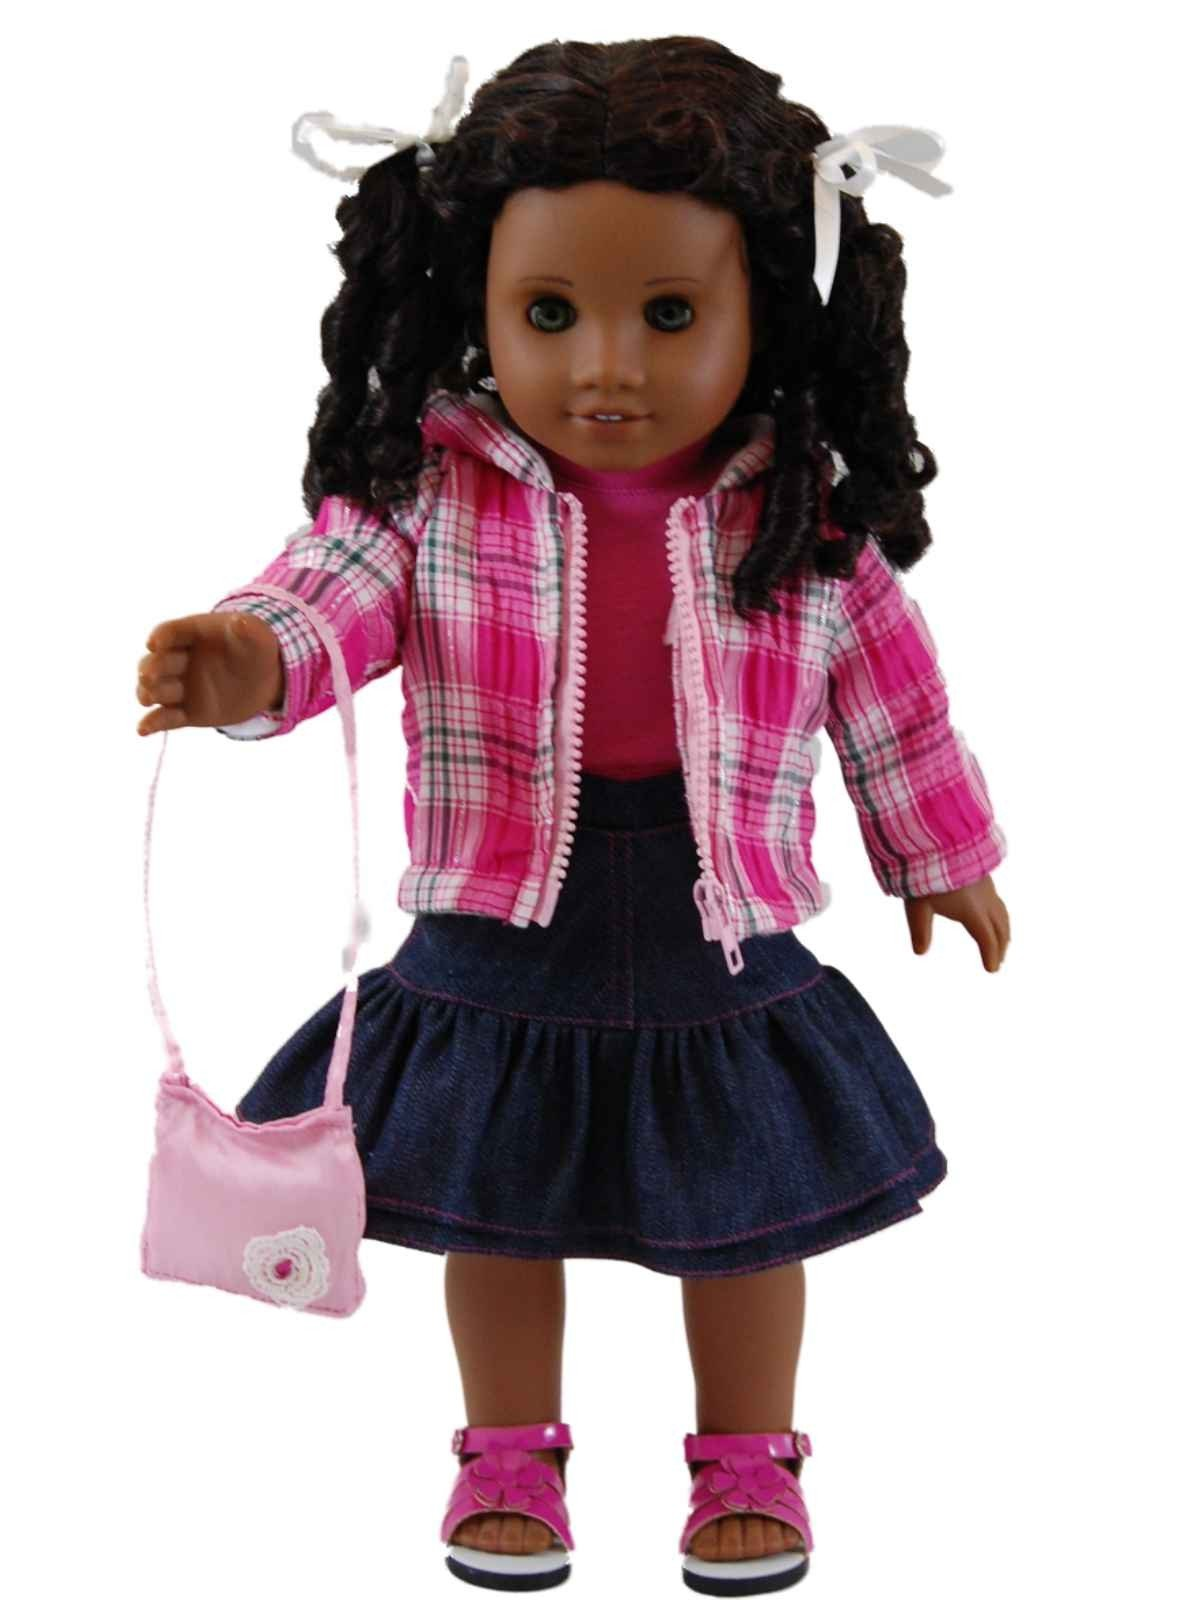 Plaid Jacket And Denim Doll Clothes Skirt Set For 18